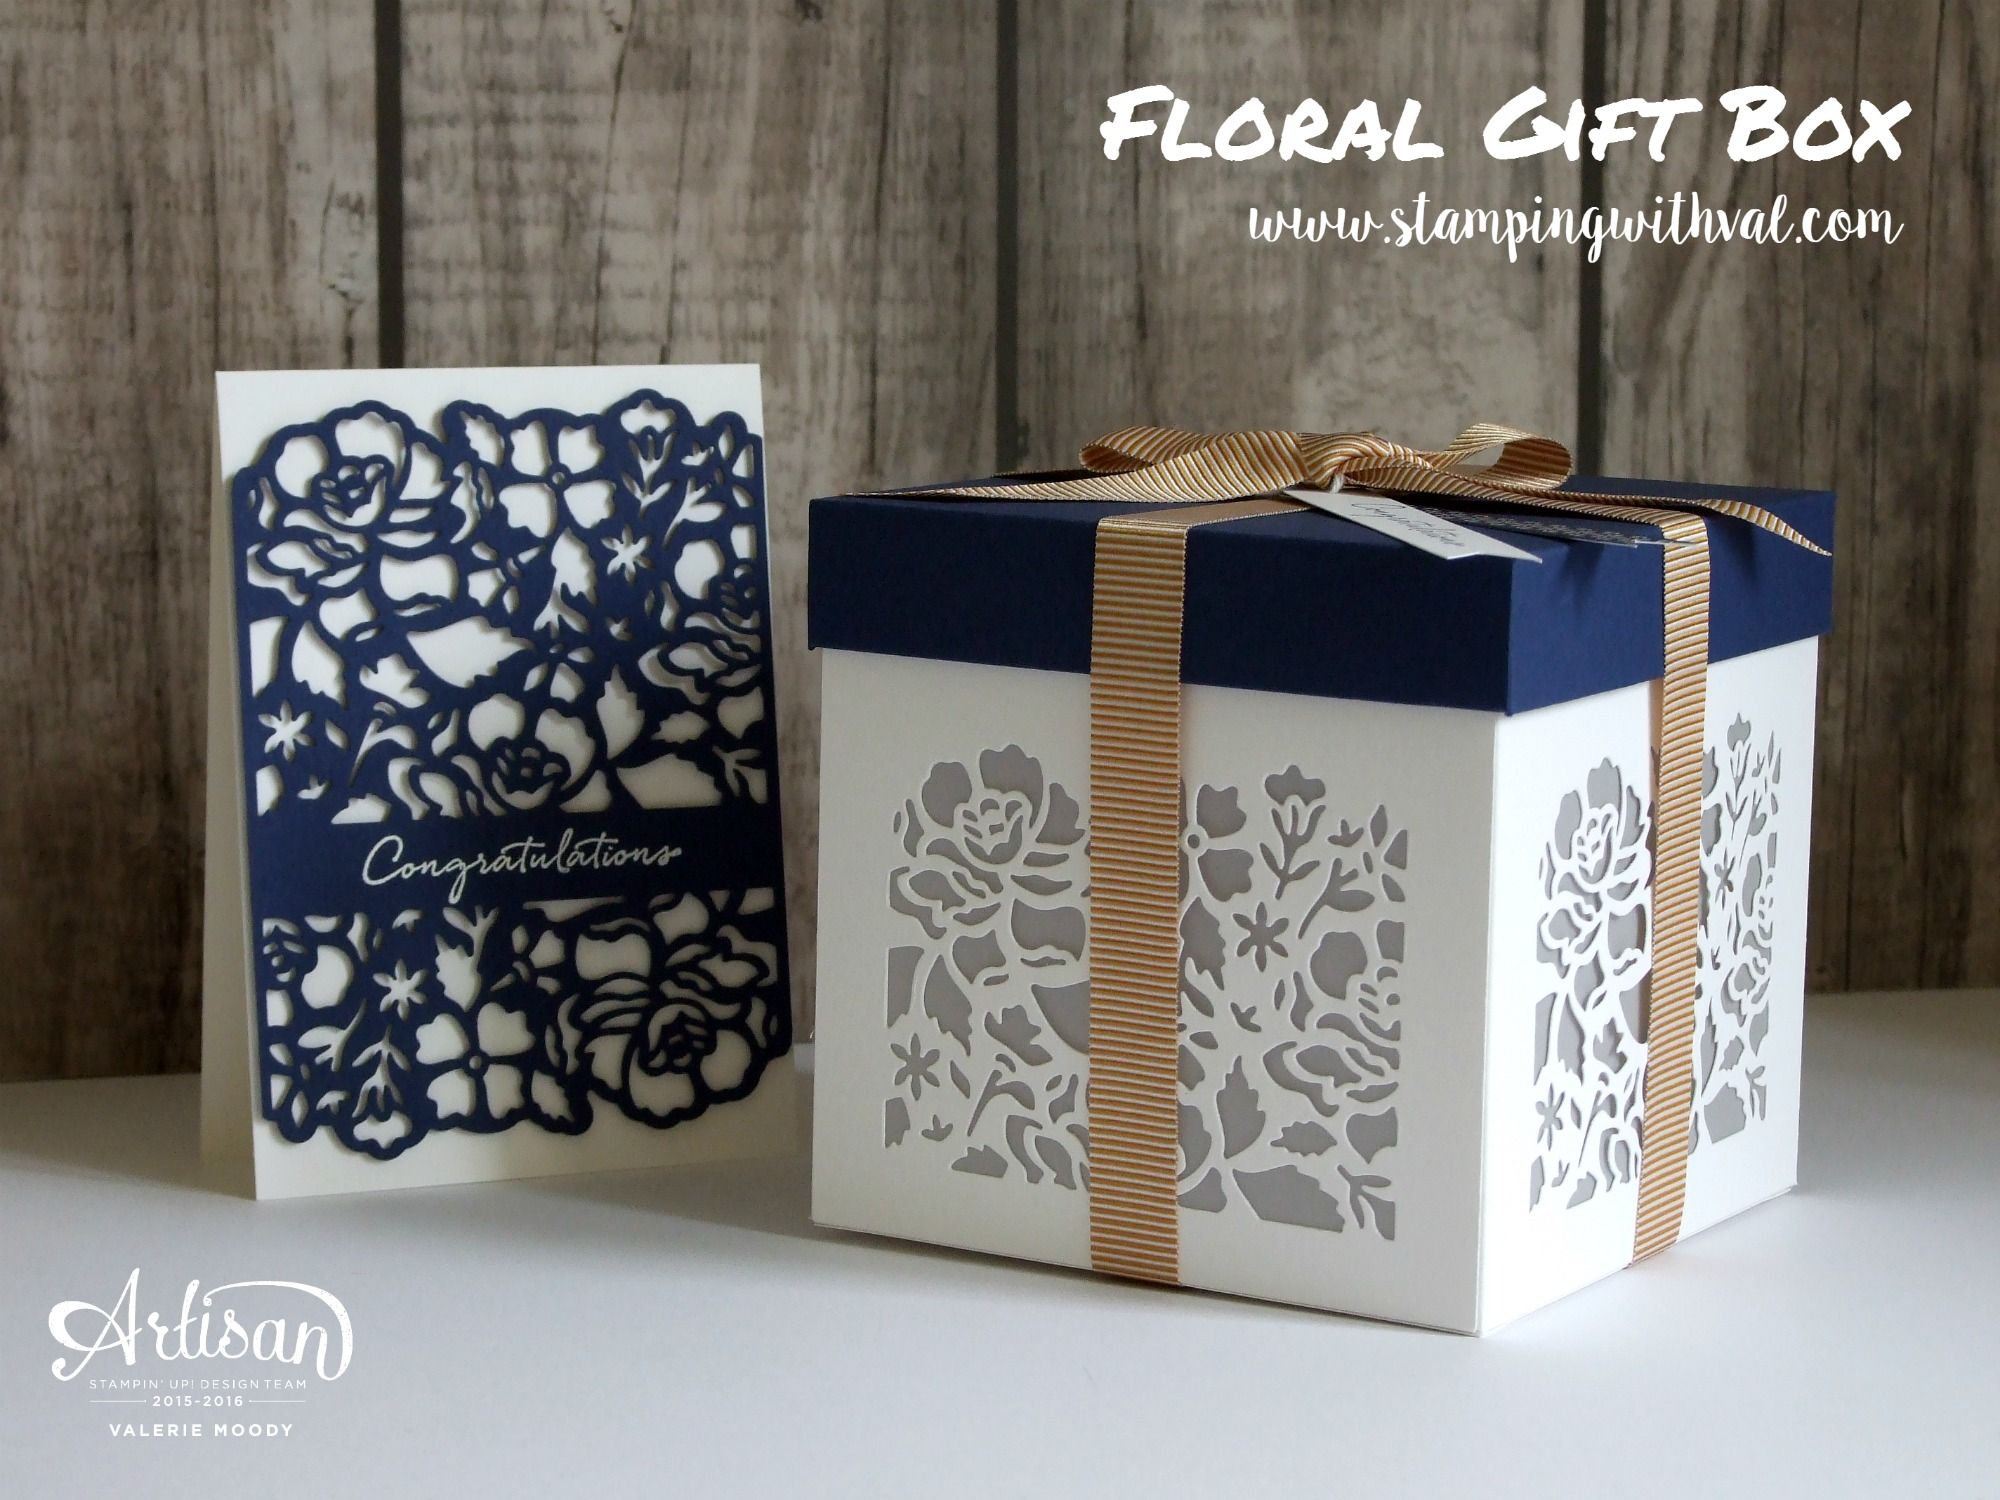 Stampin' Up! - Detailed Floral Thinlits - Gift Box - Valerie Moody, UK Stampin' Up! Demonstrator. X